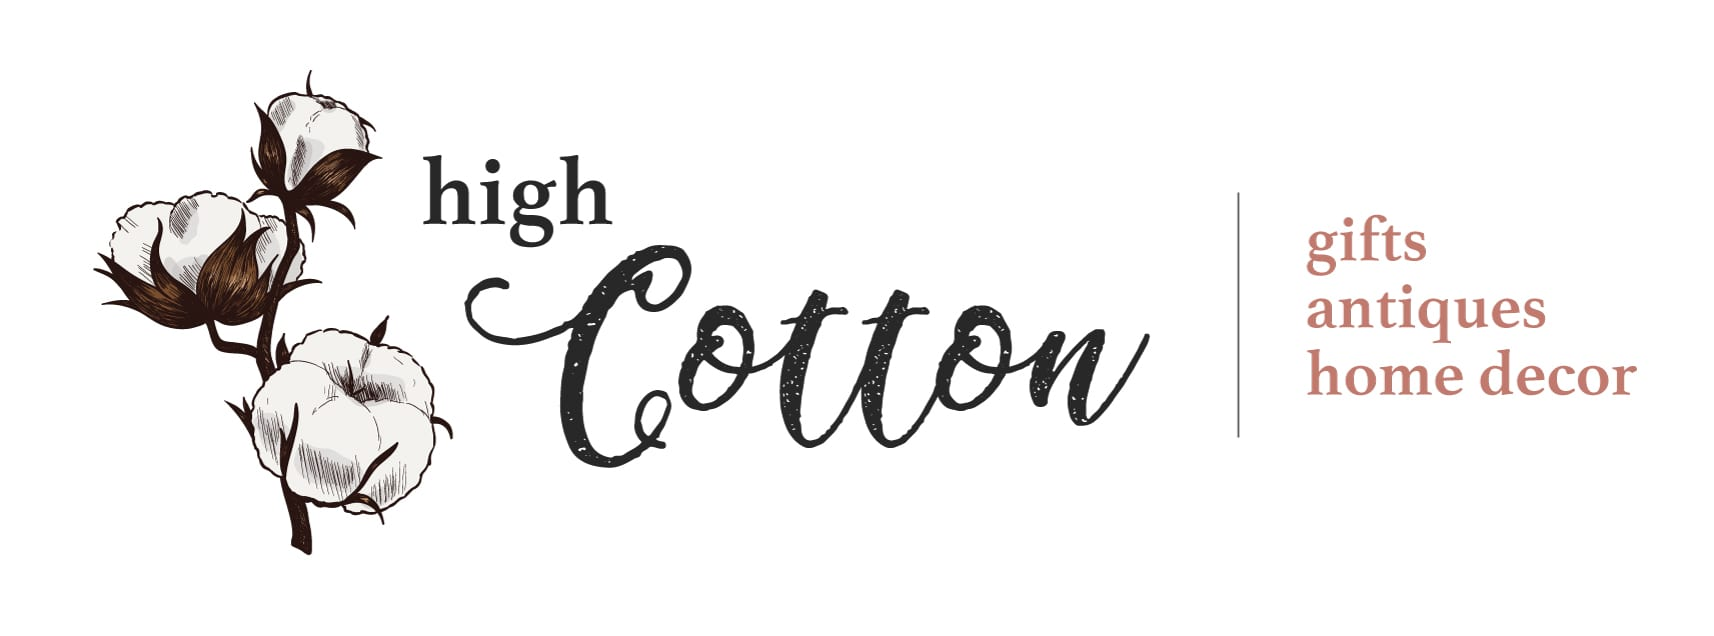 High Cotton in Dickson, Tennessee